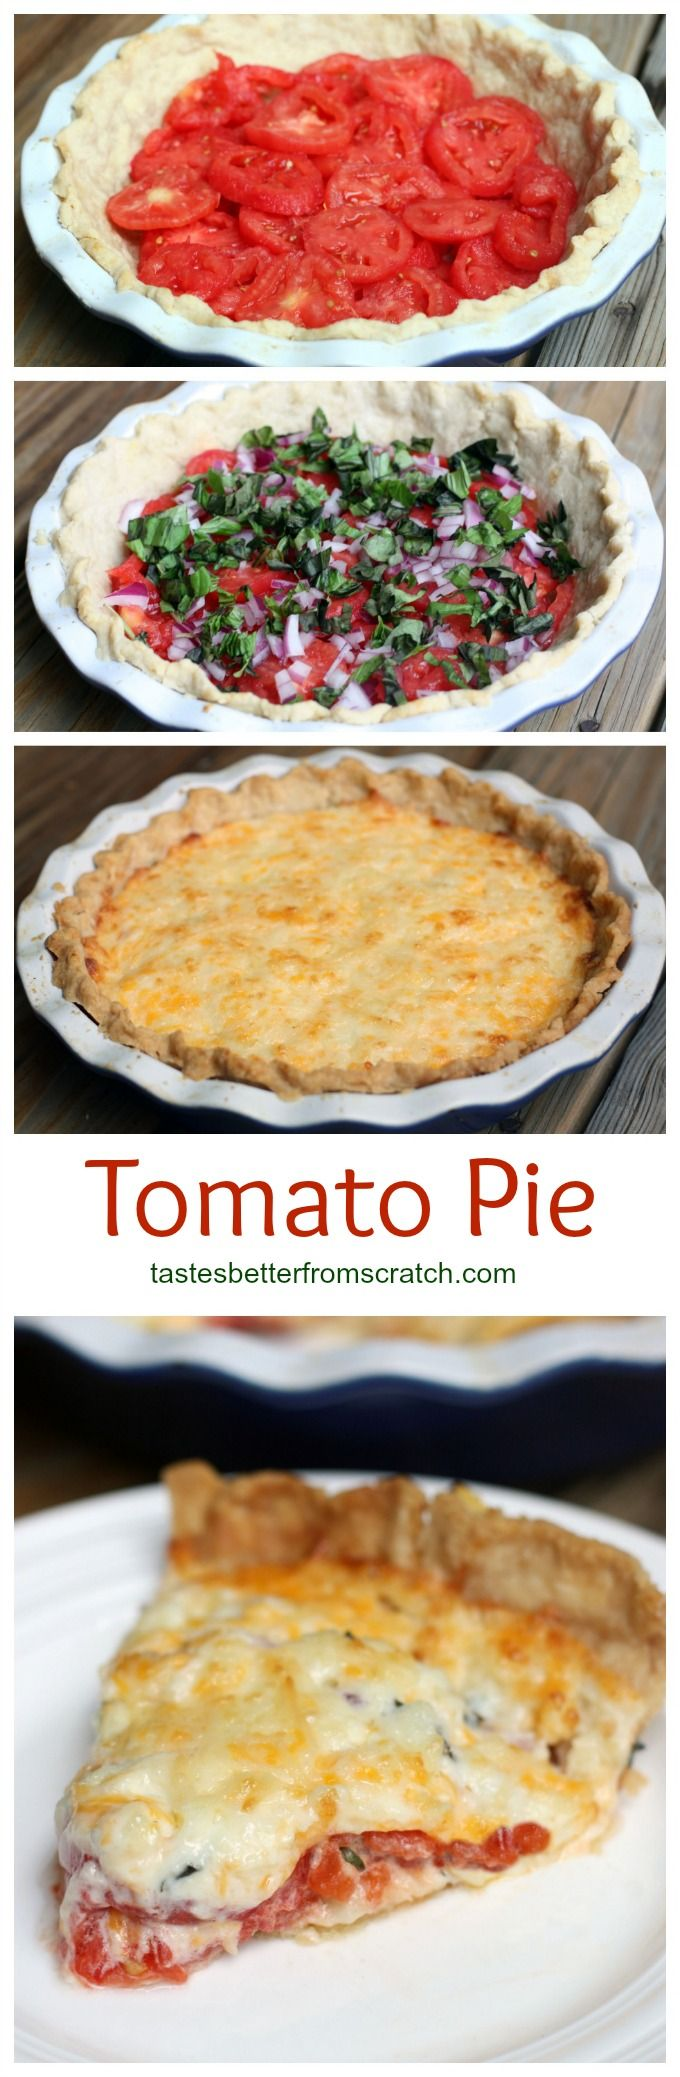 Classic Southern Tomato Pie on MyRecipeMagic.com Tomatoes layered with fresh basil and onion and topped with a delicious cheese mixture--baked to perfection!